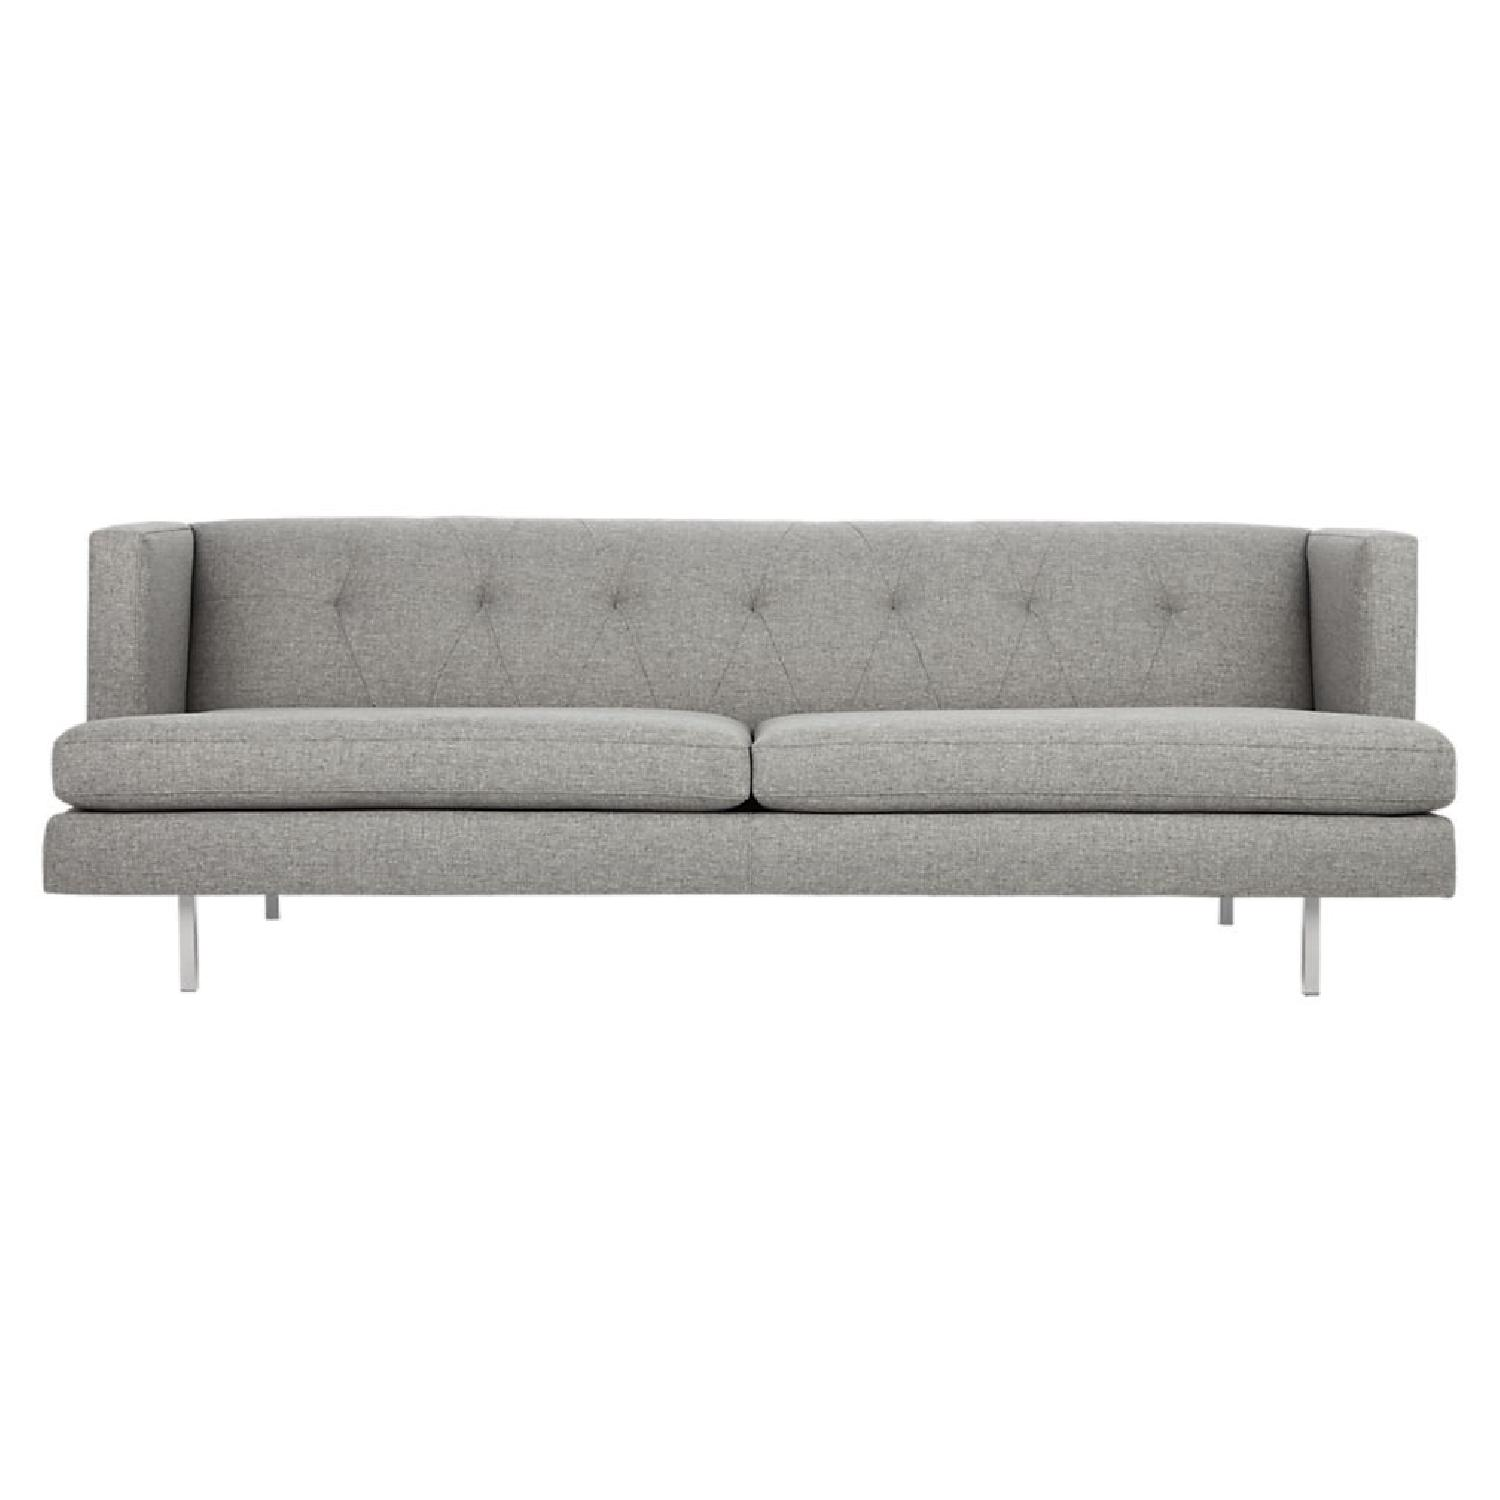 CB2 Central Grey Sofa